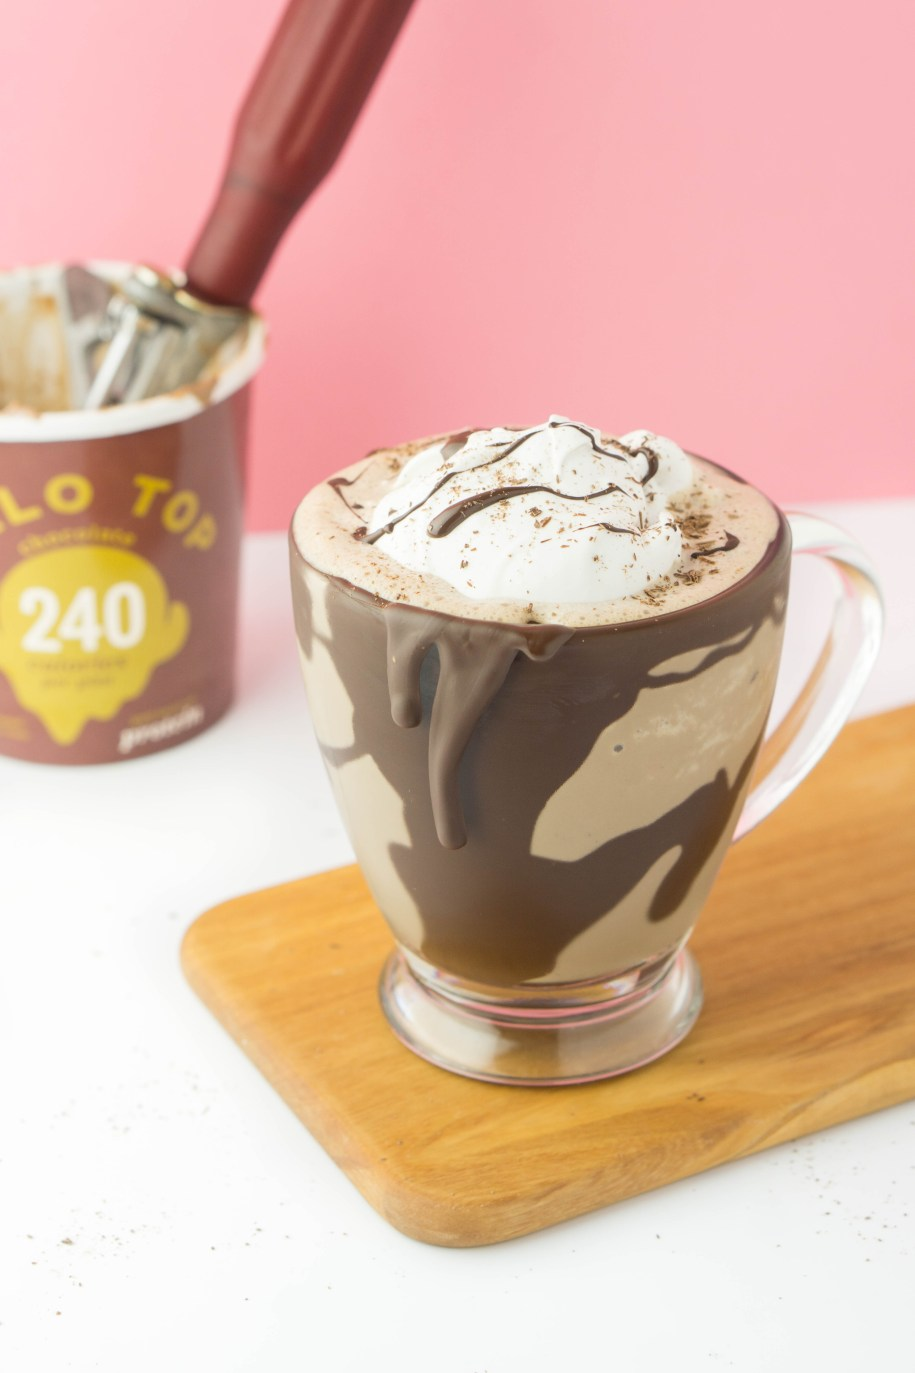 Low Calorie Frozen Hot Chocolate! The most amazing drink made with the most amazing ice cream, HALO TOP! #healthy #protein #light #Milkshake | www.wakeuptowaffles.com